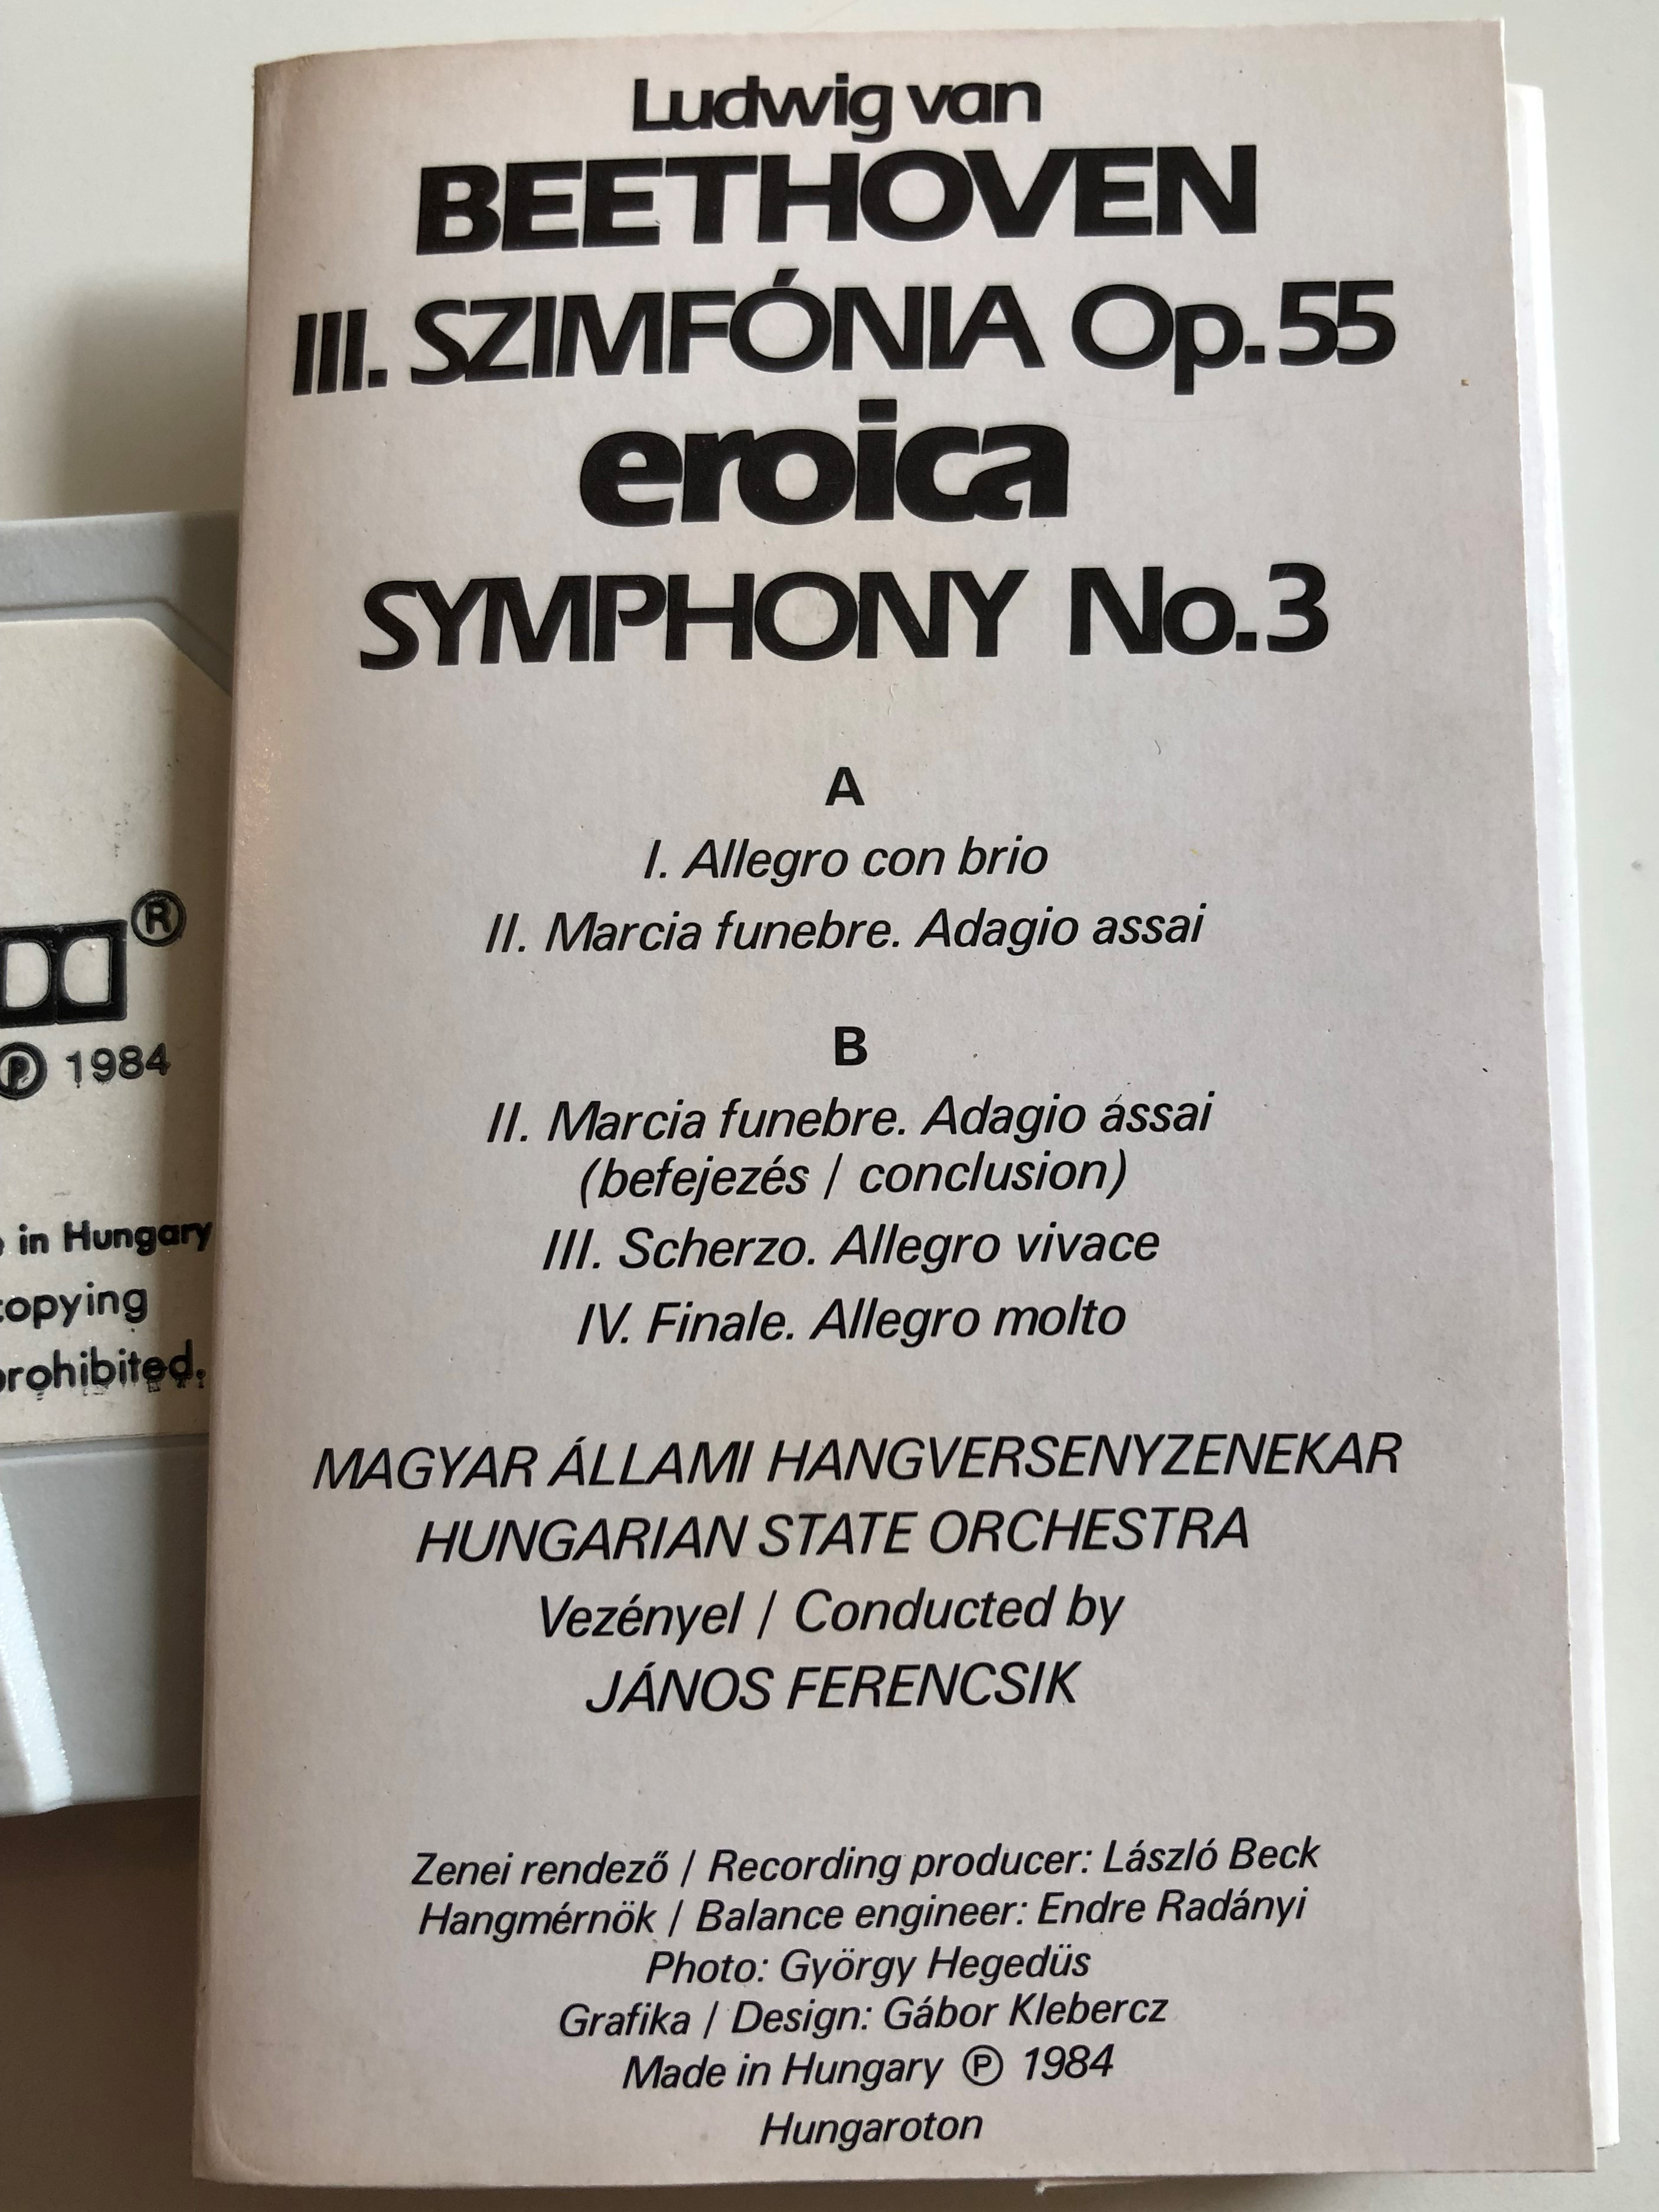 beethoven-symphony-no.-3-eroica-hungarian-state-orchestra-j-nos-ferencsik-hungaroton-cassette-stereo-mk-12566-3-.jpg